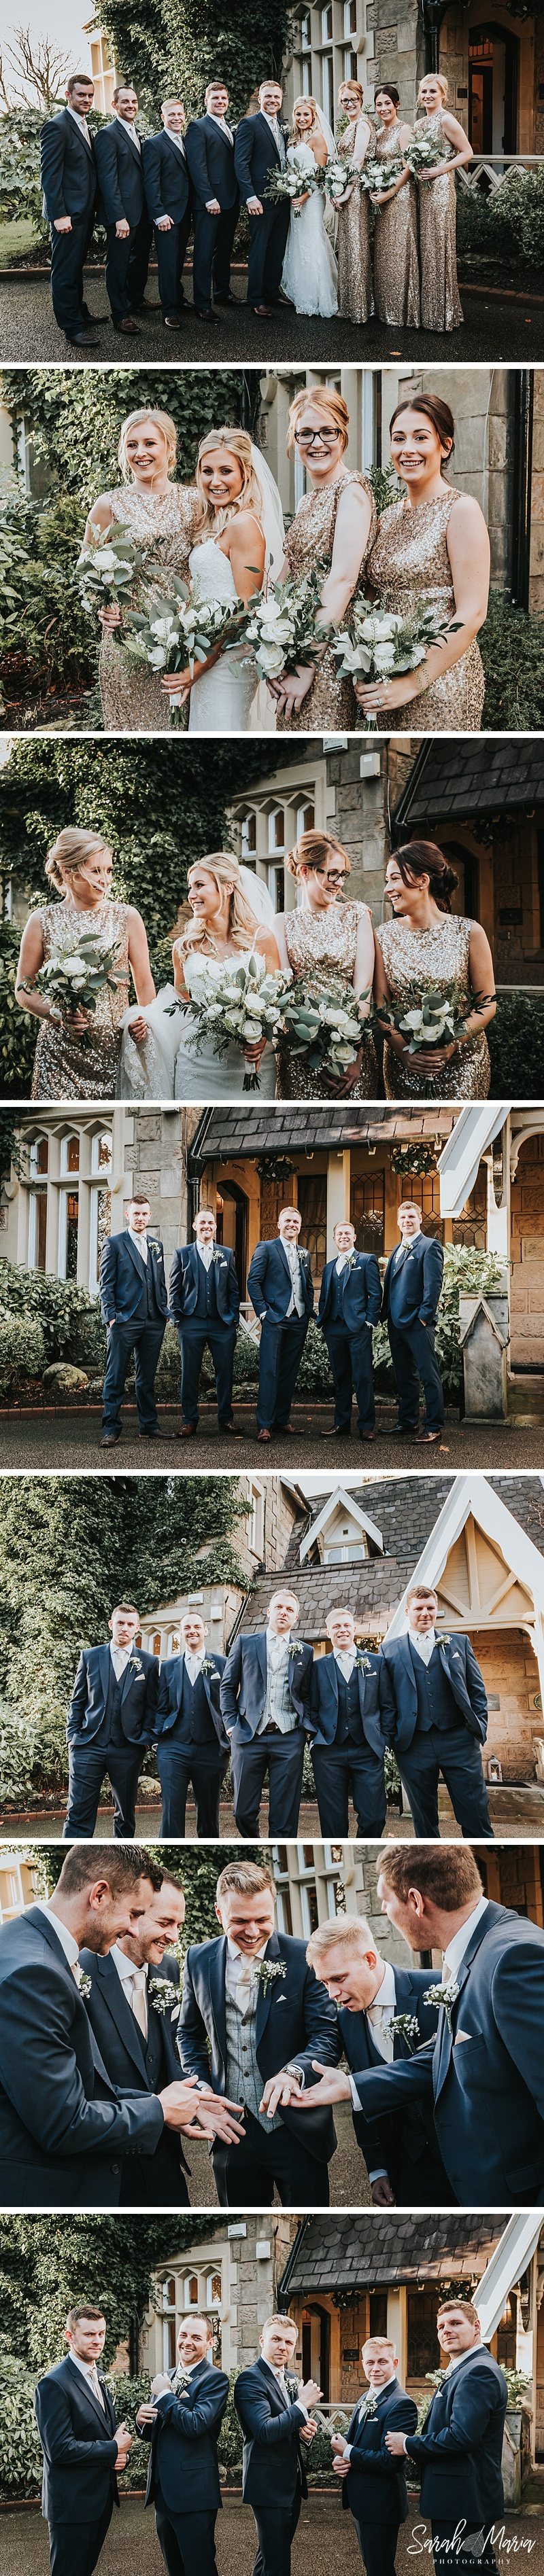 group portraits of bride, groom, groomsmen and bridesmaids